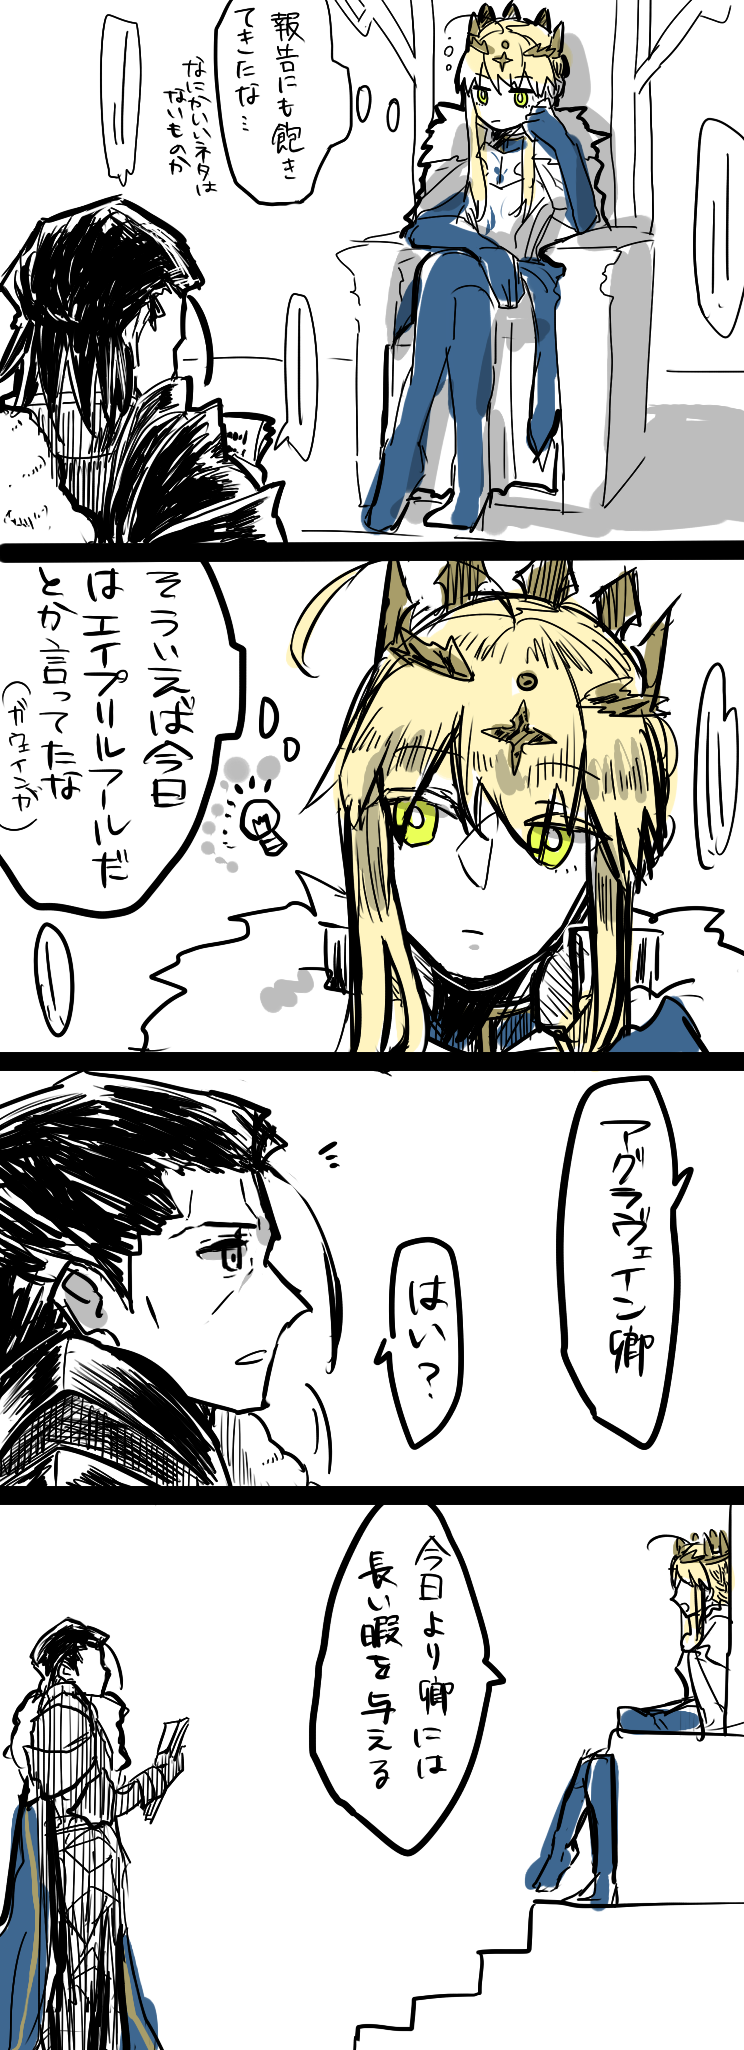 4koma agravain_(fate/grand_order) armor artoria_pendragon_lancer_(fate/grand_order) black_hair blonde_hair boots cape comic crown elbow_gloves fate/grand_order fate_(series) fur gloves green_eyes open_mouth short_hair shoulder_pads thigh_boots white_eyes